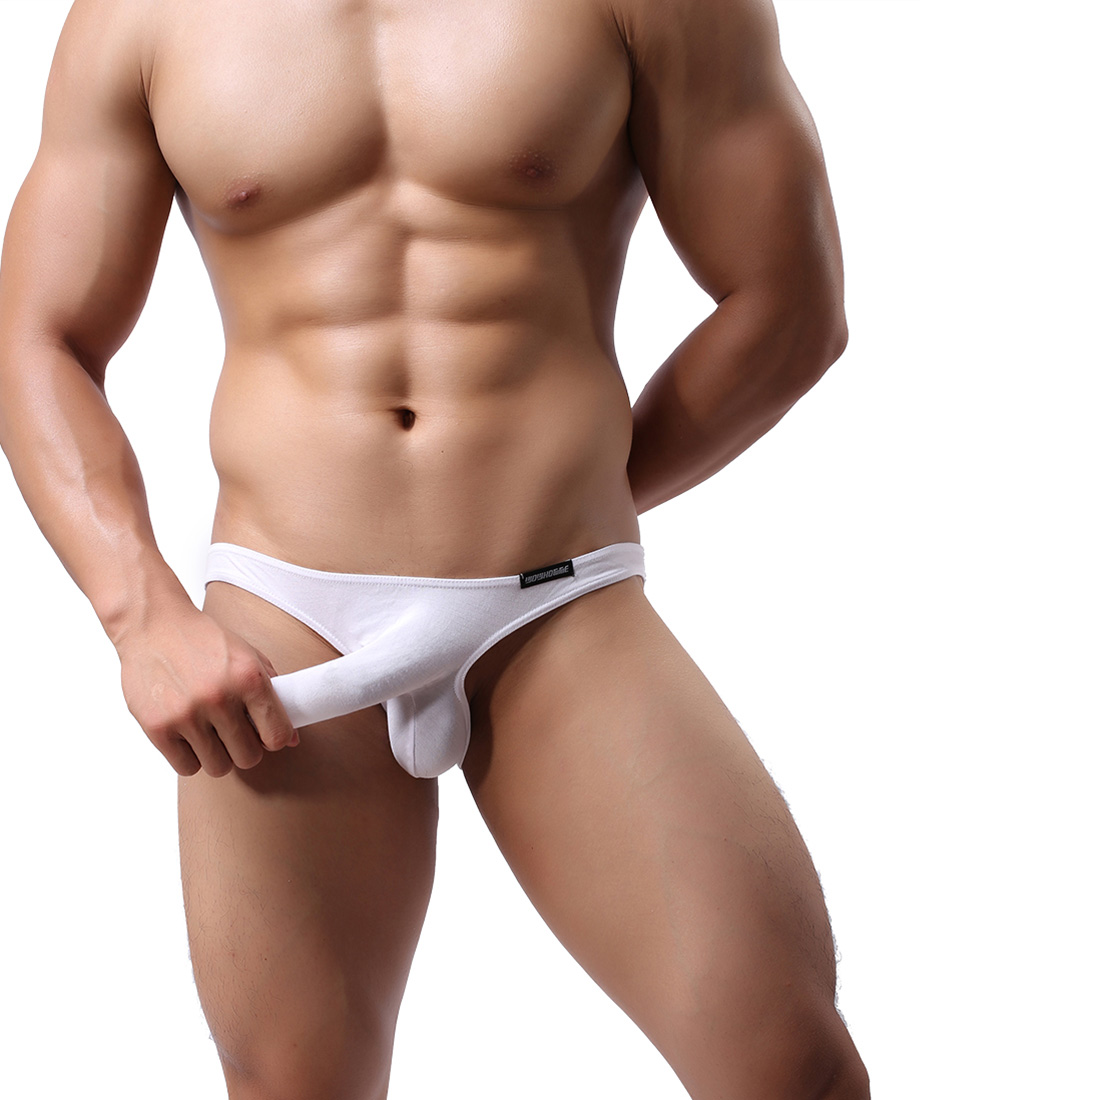 The Best Underwear for Men. The best mens underwear comes in many cuts, including: boxers, trunks, briefs, and boxer briefs, and many different styles of athletic underwear and sexy men's underwear, just to name a few. Our extensive collection of men's underwear is the best you'll find, and a much wider selection than you'll find in any department store.